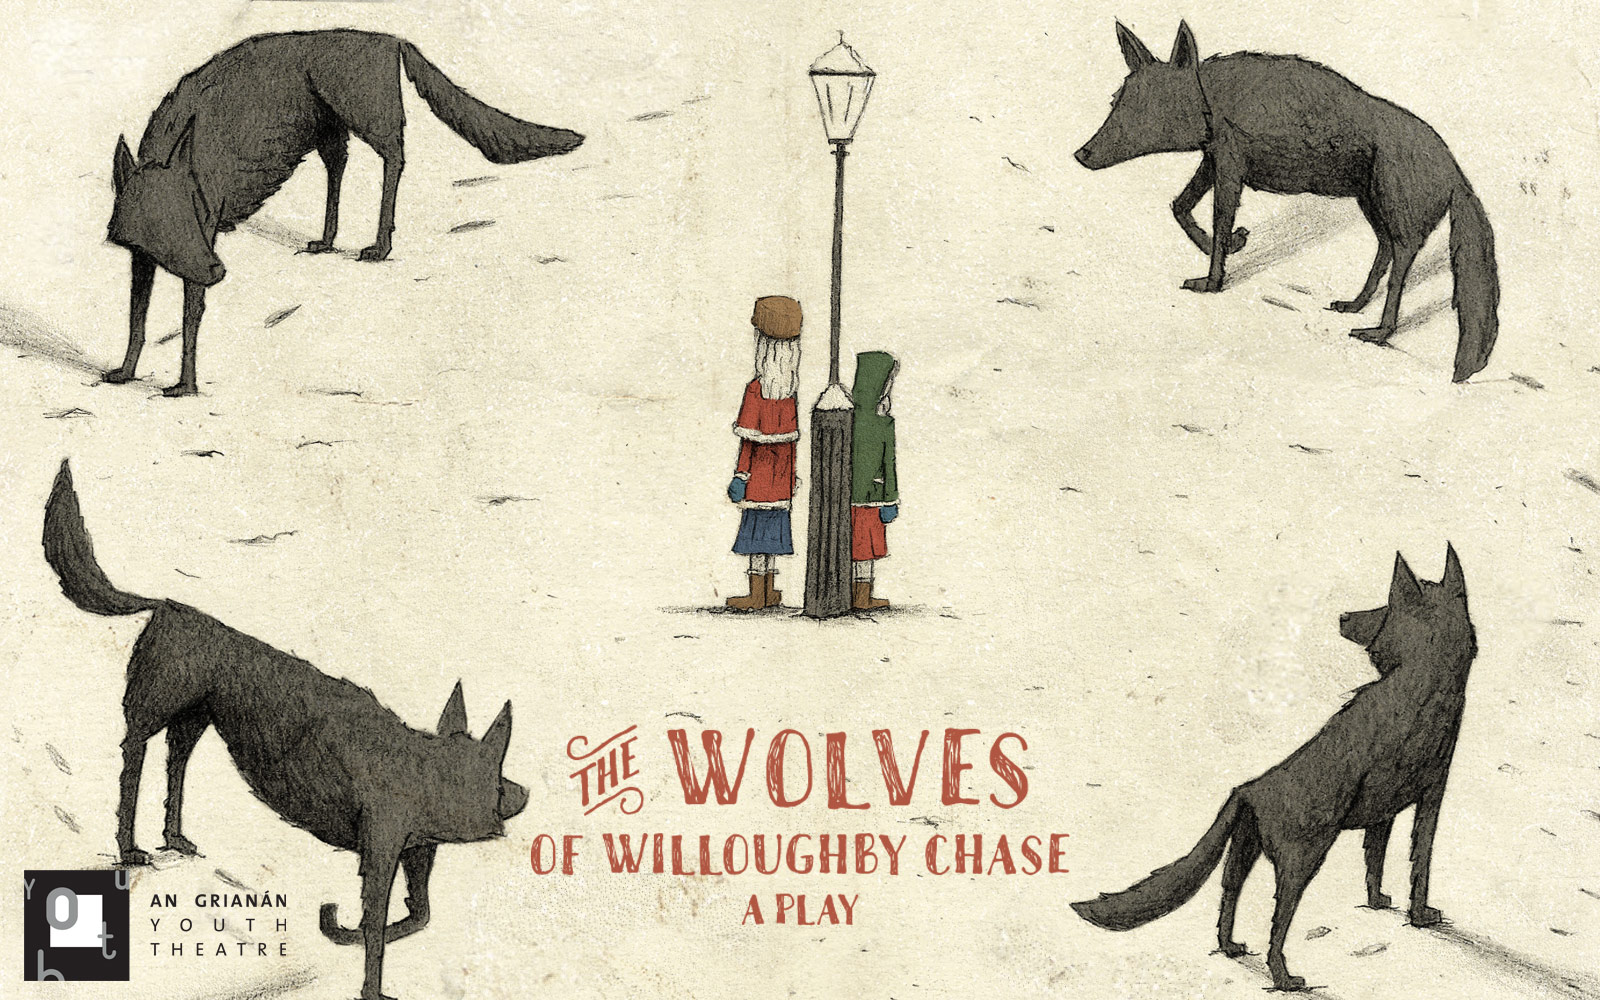 An Grianan Youth Theatre present The Wolves of Willoughby Chase.